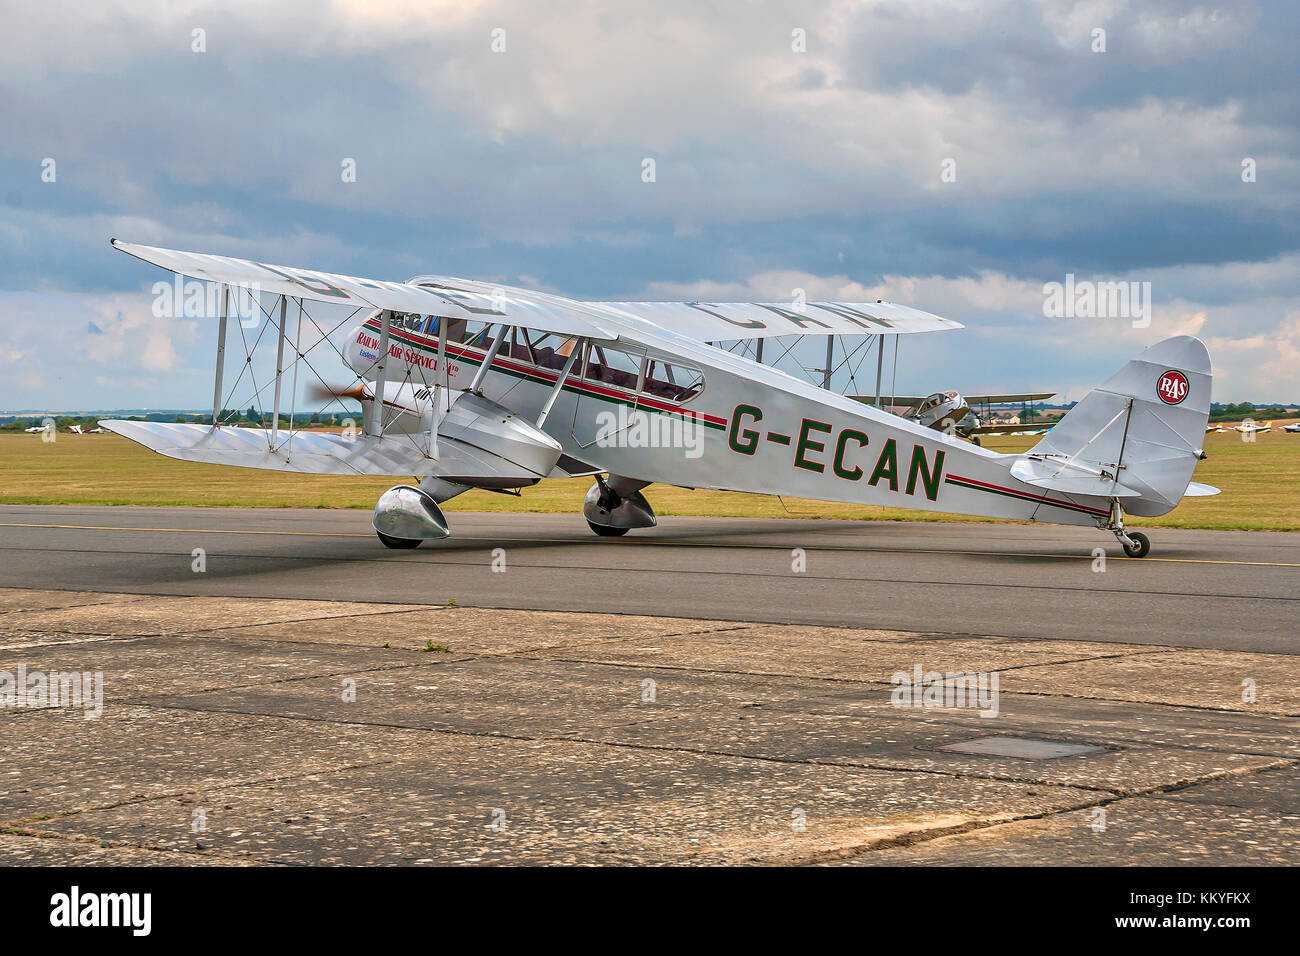 1943 De Havilland DH84 Dragon G-ECAN is operated by the Norman Aeroplane Trust and is seen taxying at Duxford in - Stock Image